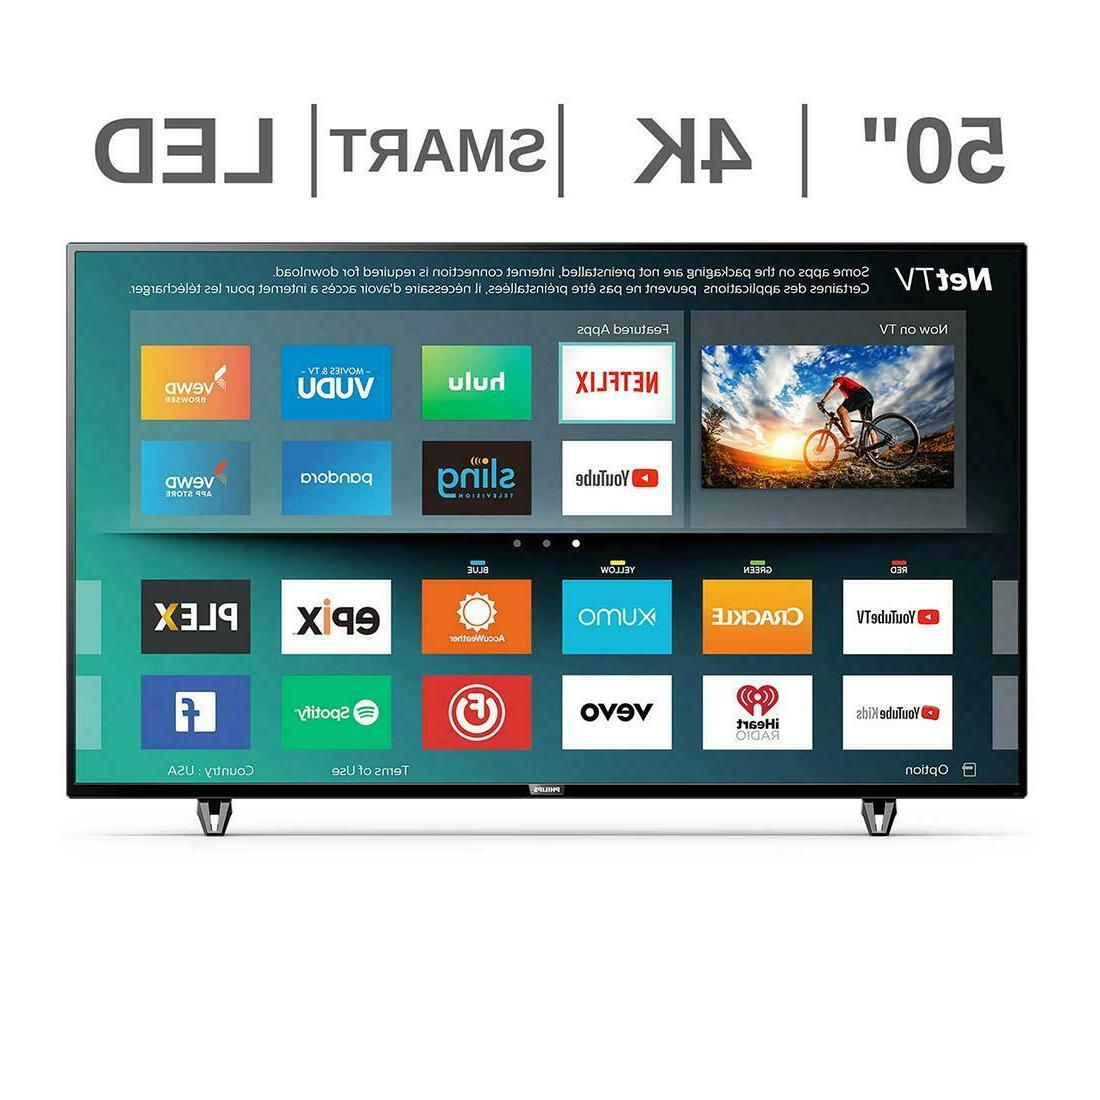 LG 49 Inch LED 4K Ultra HD Smart TV - 49UM6900PUA